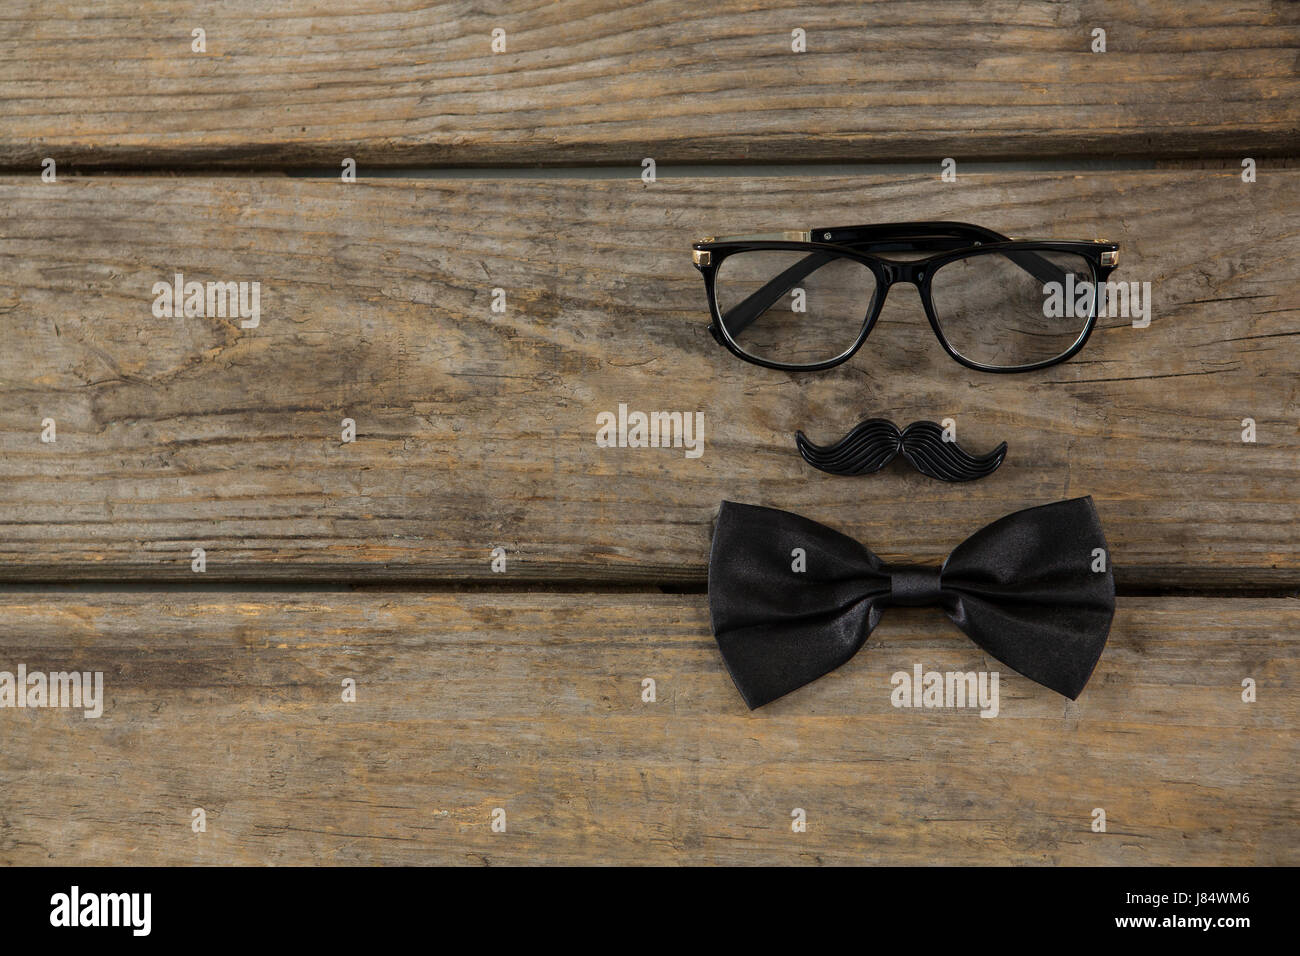 Overhead view of bow tie with mustache and eyeglasses on wooden table - Stock Image